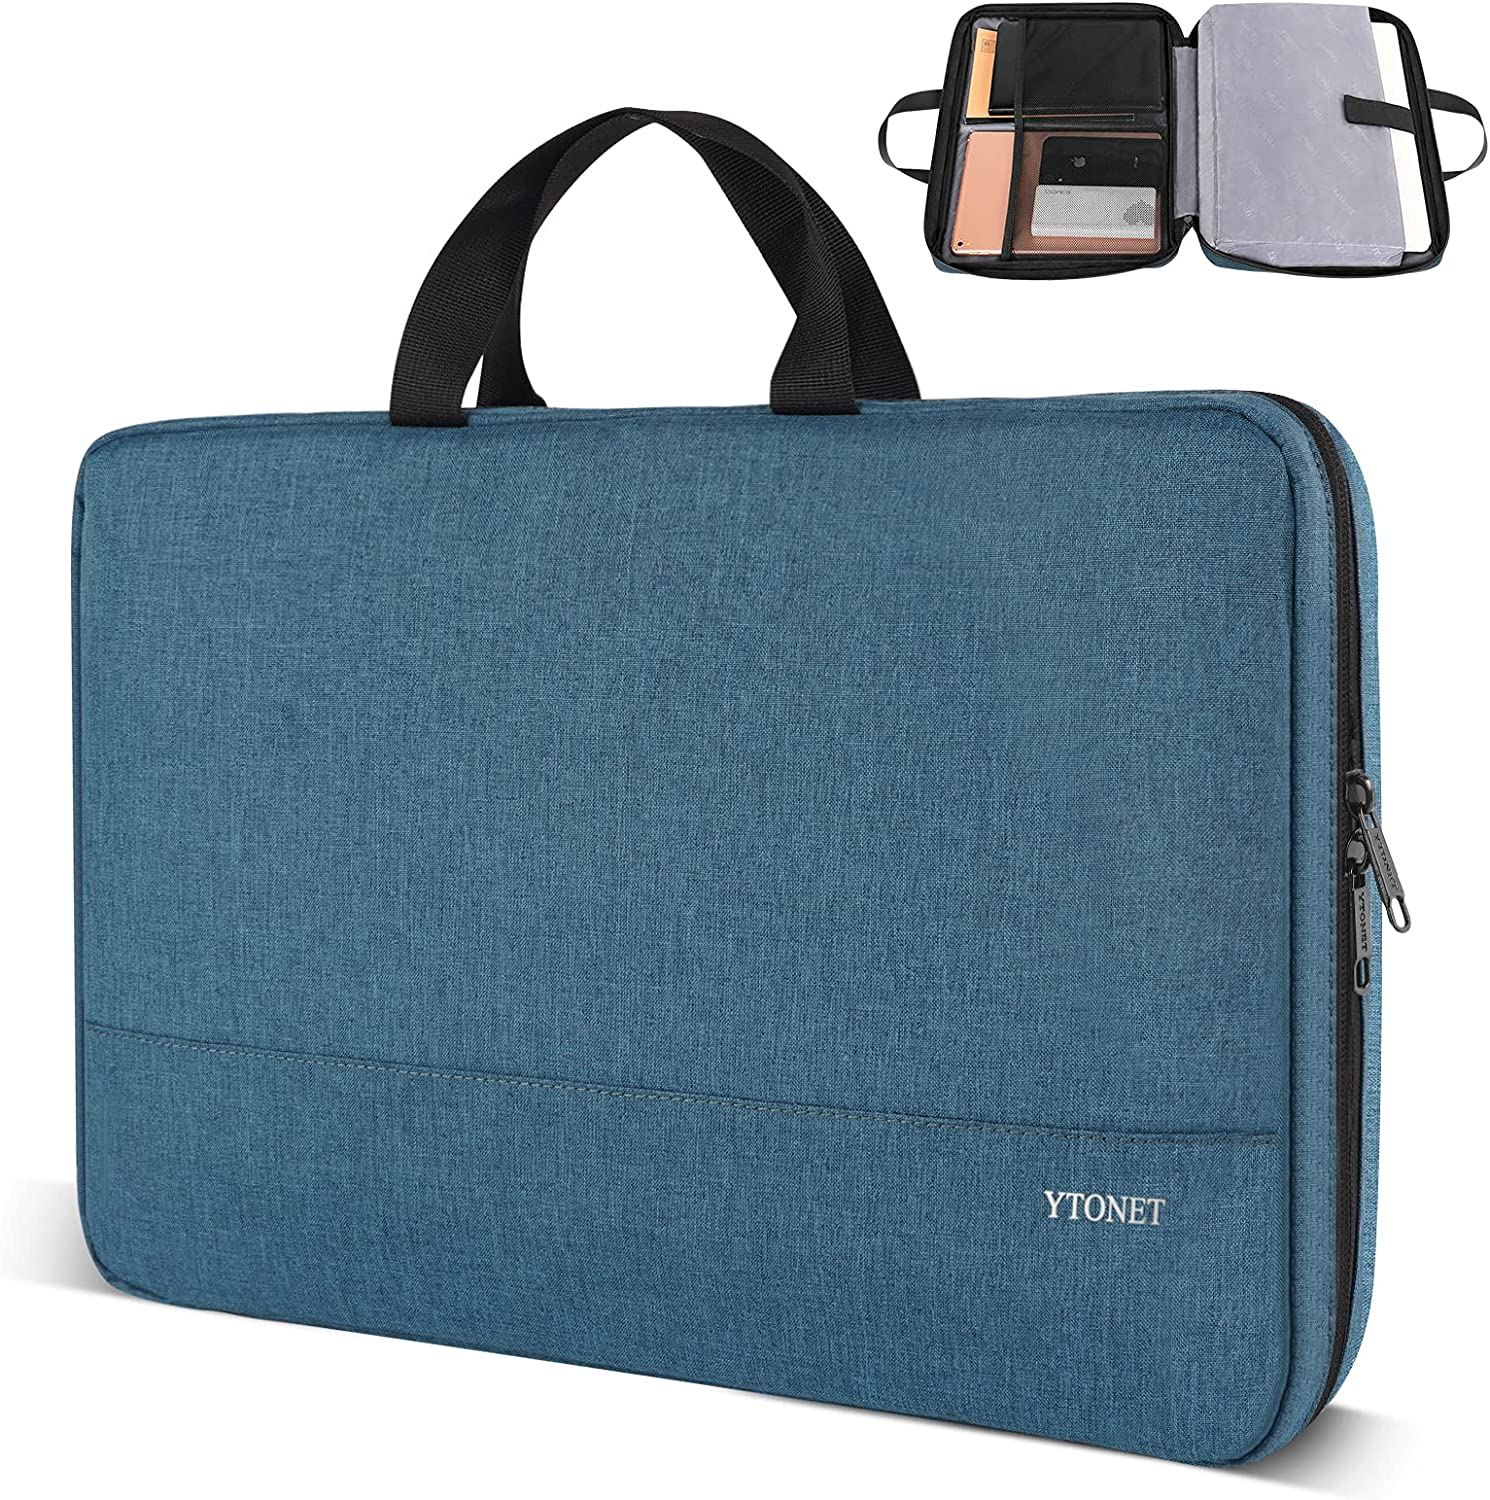 Ytonet Laptop Sleeve Case, 15.6 inch Slim Water Resistant TSA Laptop Case,Handle Bag for 15.6 inch HP Dell Asus Notebook, Deep Teal